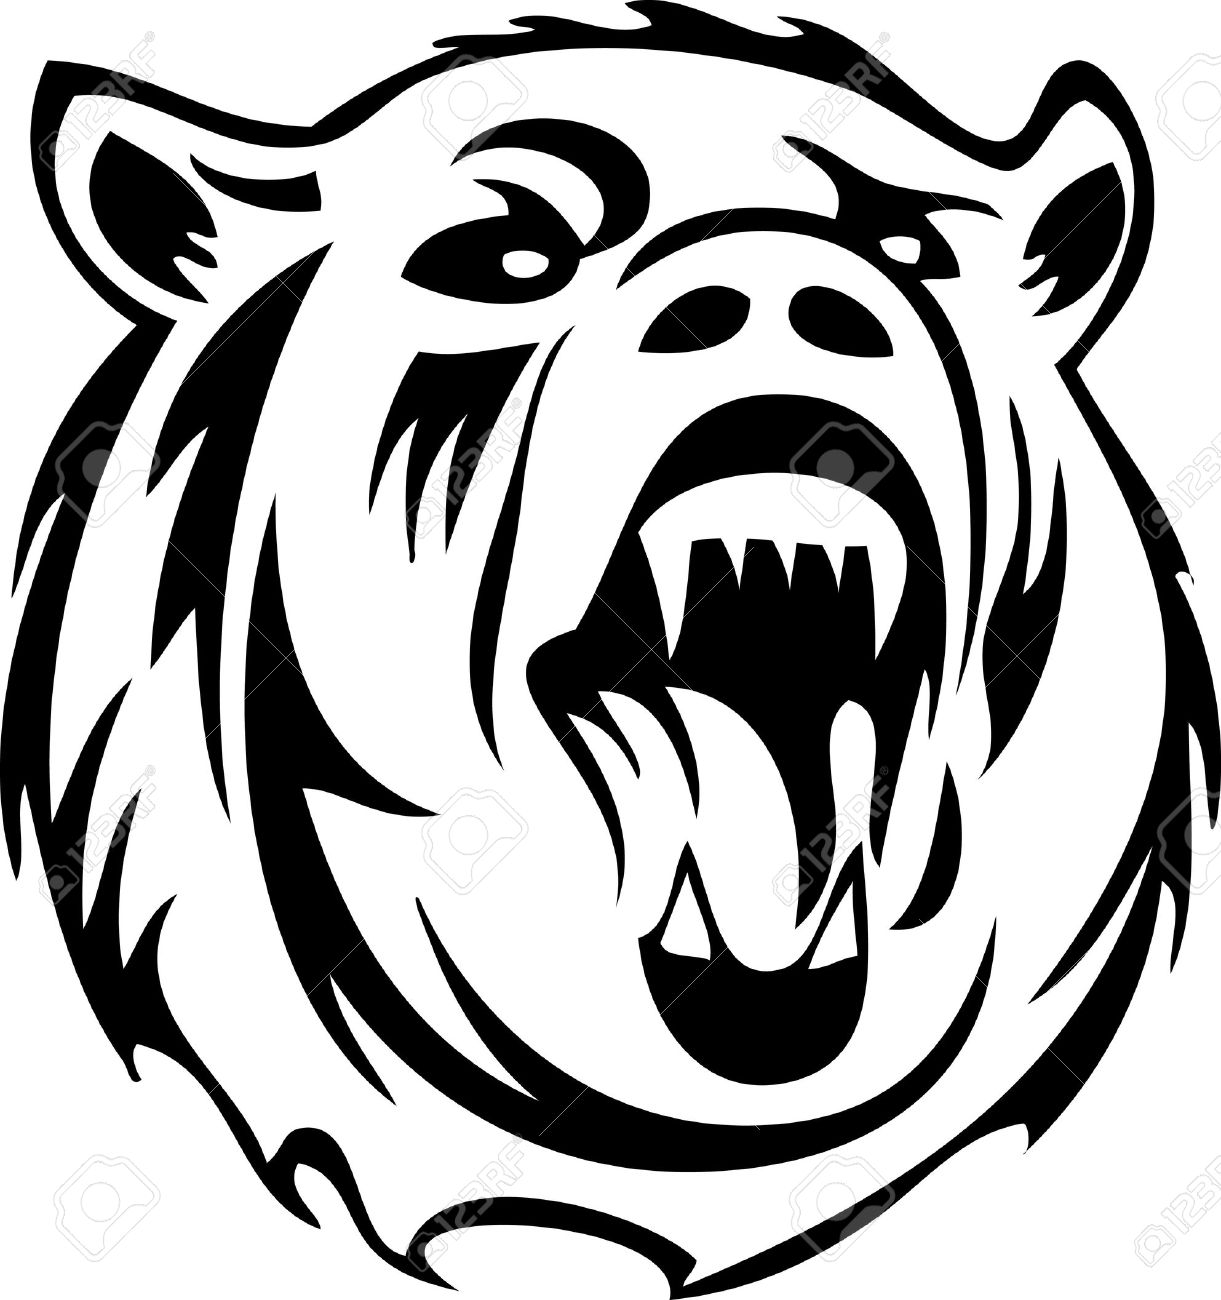 Grizzly clipart #8, Download drawings